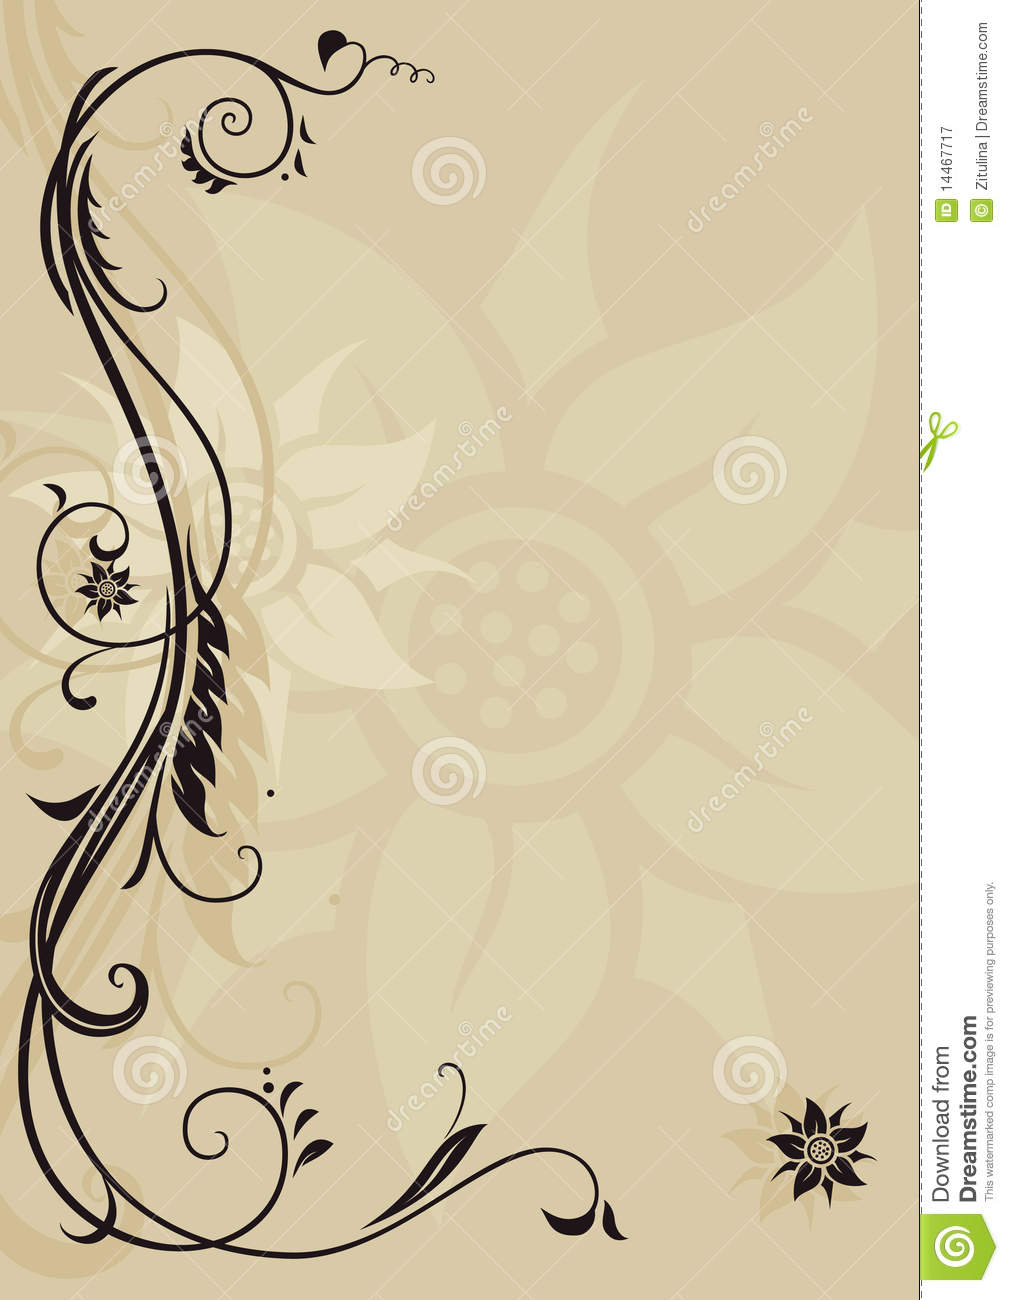 Ornamental Letterhead Royalty Free Stock Photography - Image: 14467717